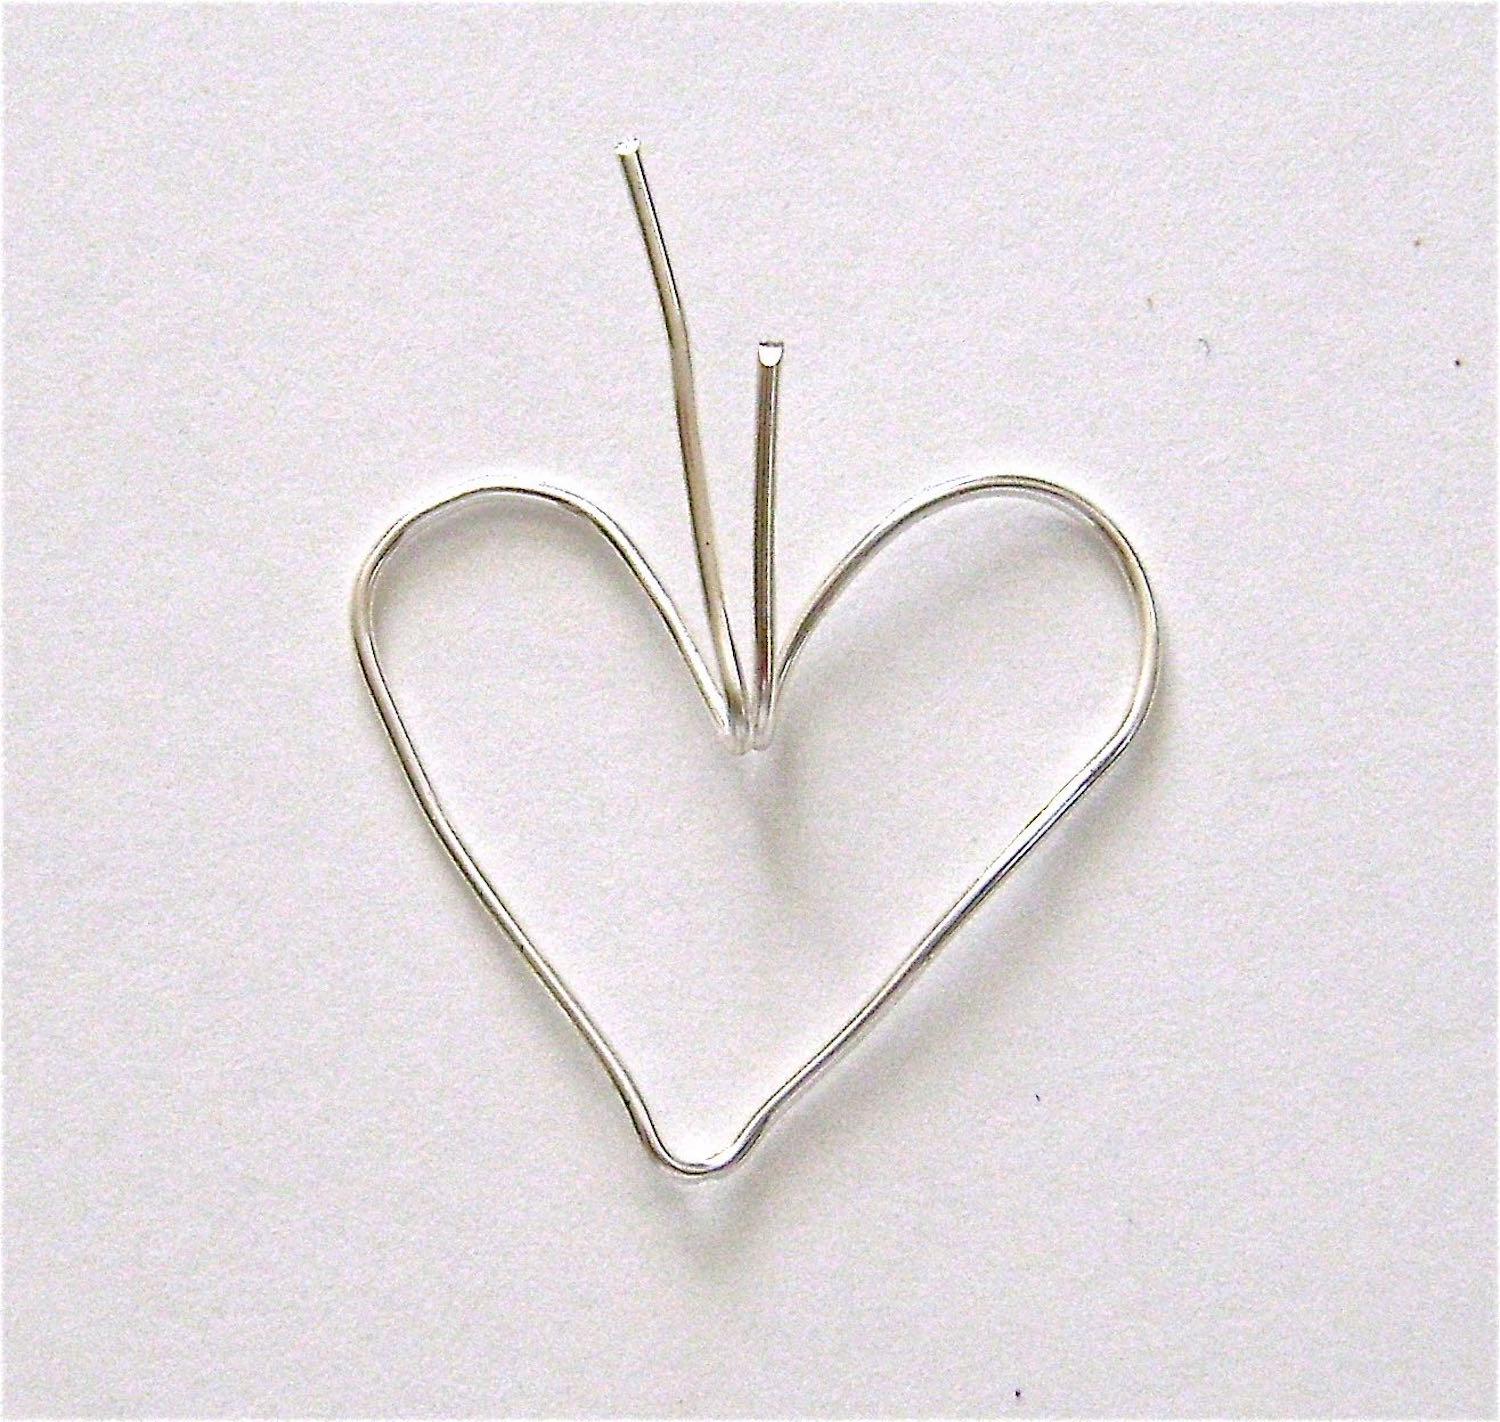 step 3 - Bend both wires to an angle where they meet in the center.  The edge of a metal ruler is ideal for this. Create a 45 degree angle with the wires pointing up from the heart.  These wires will form the pendant loop later.